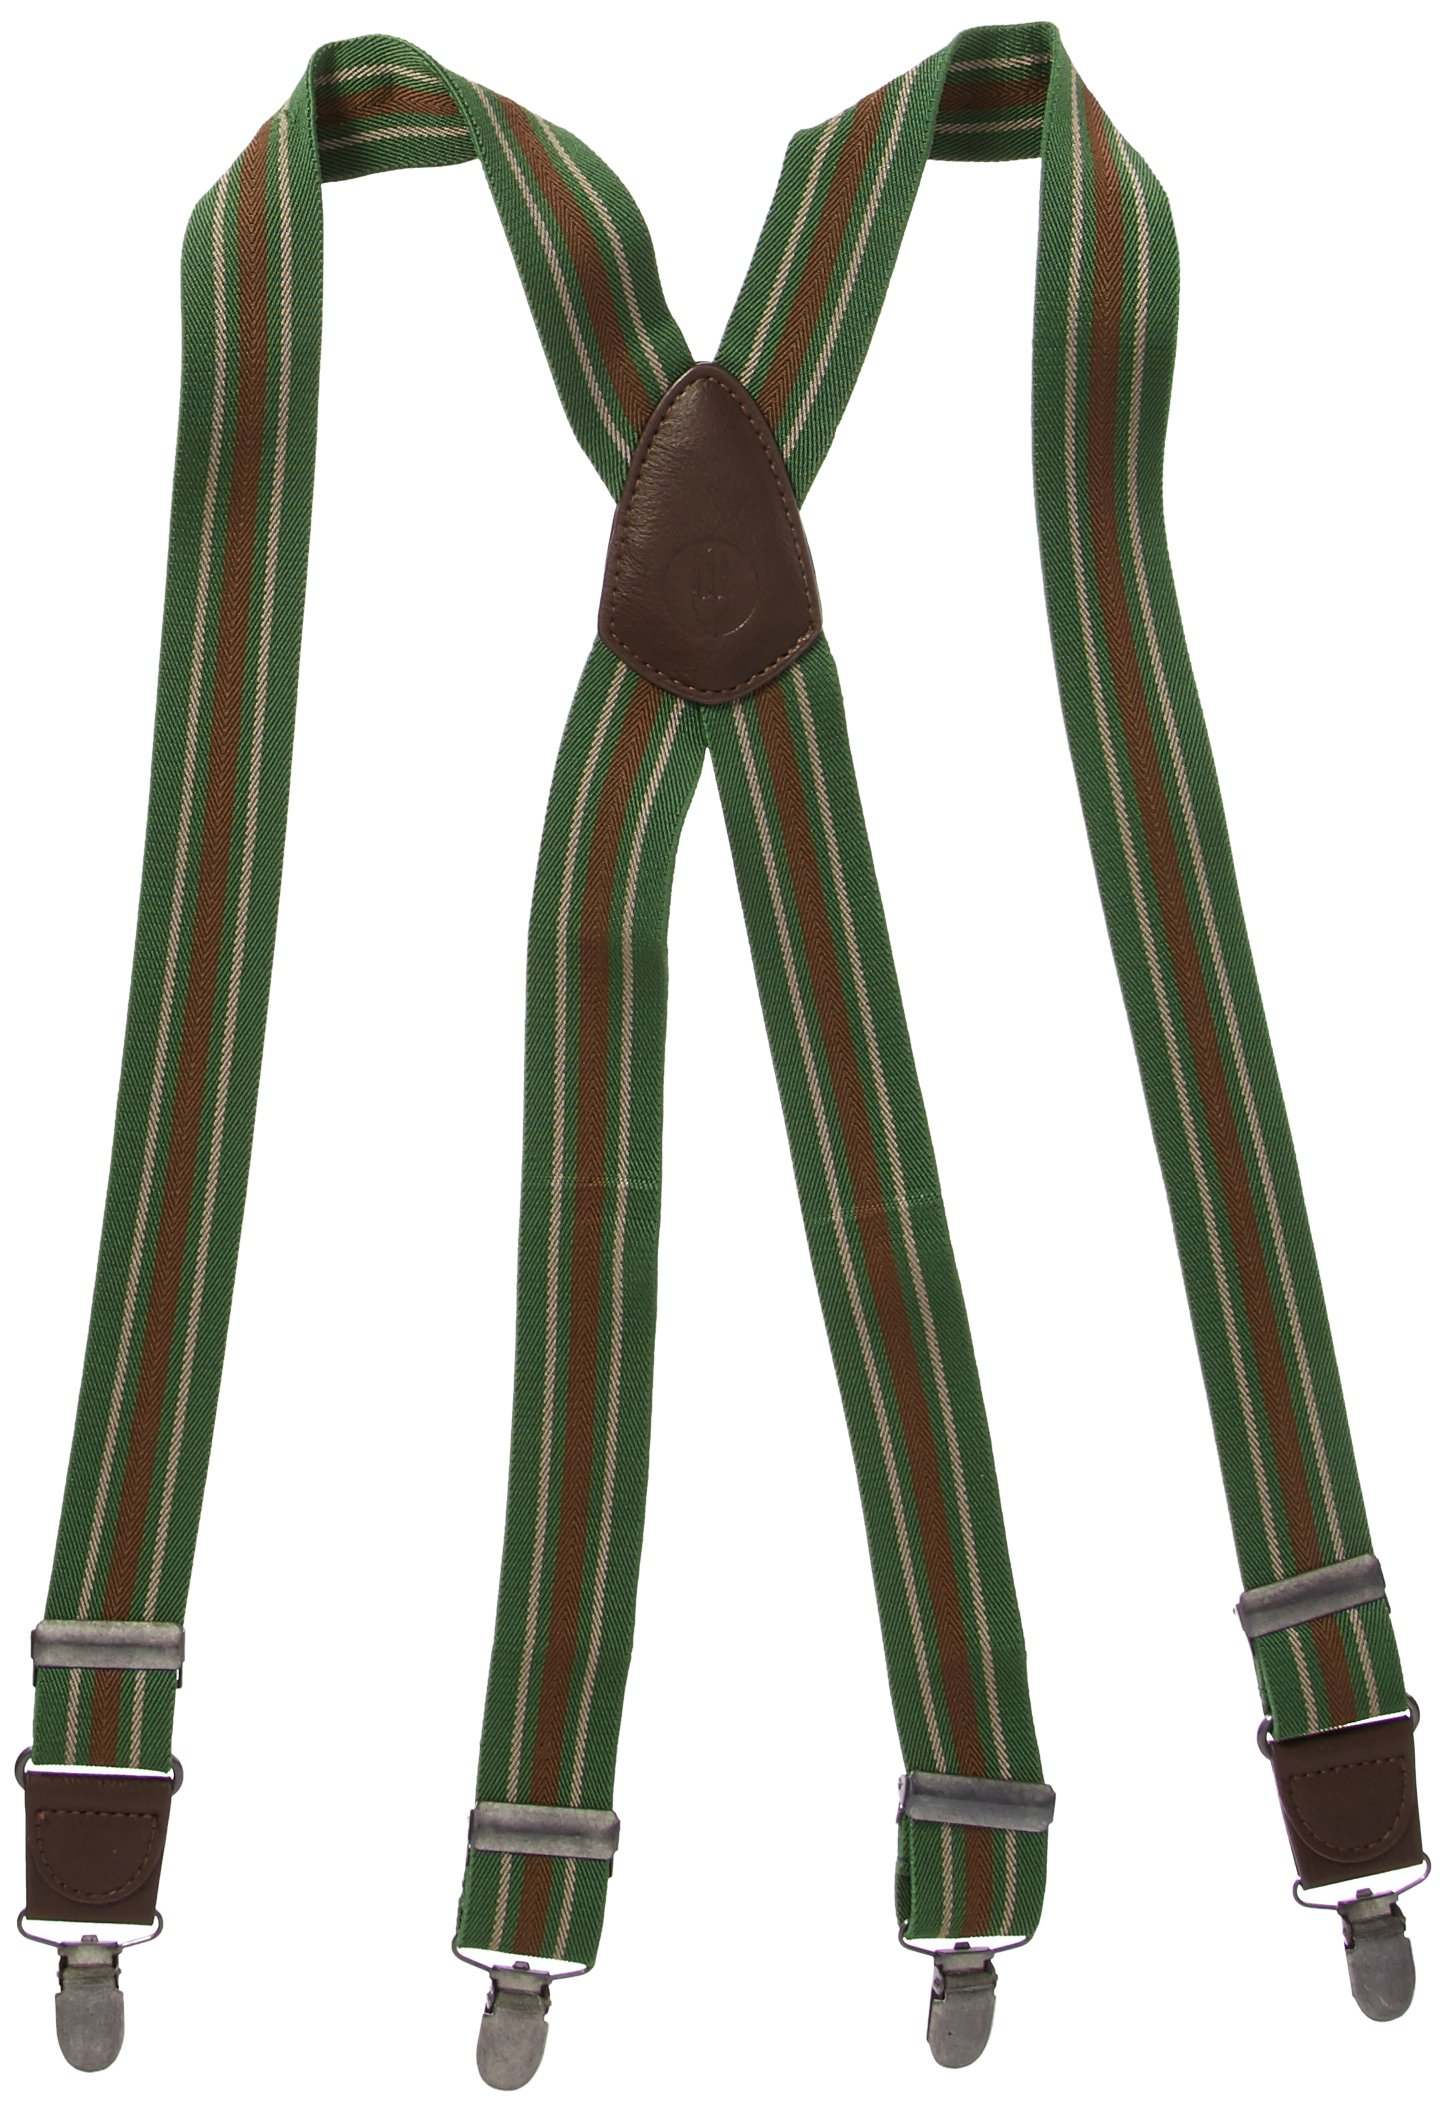 Chef Works Men's Berkeley Striped Bib Apron Suspenders, Green/Multi, OS